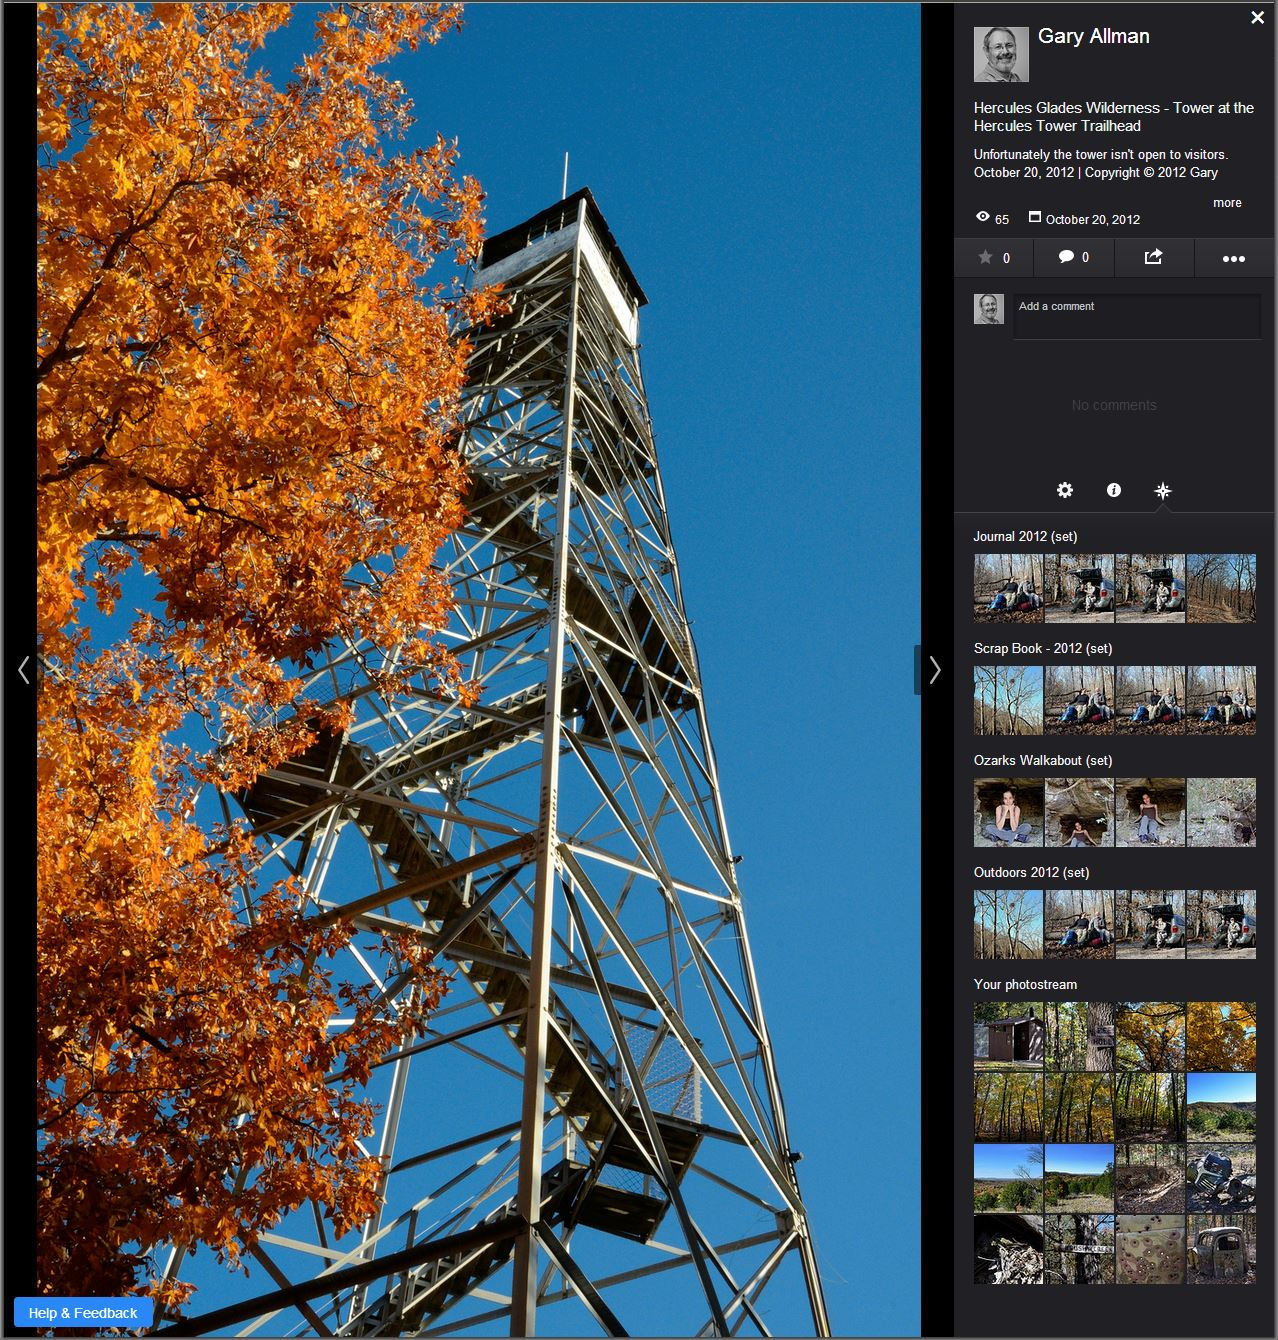 October 2013 - New Review version of the Flick Photo Page